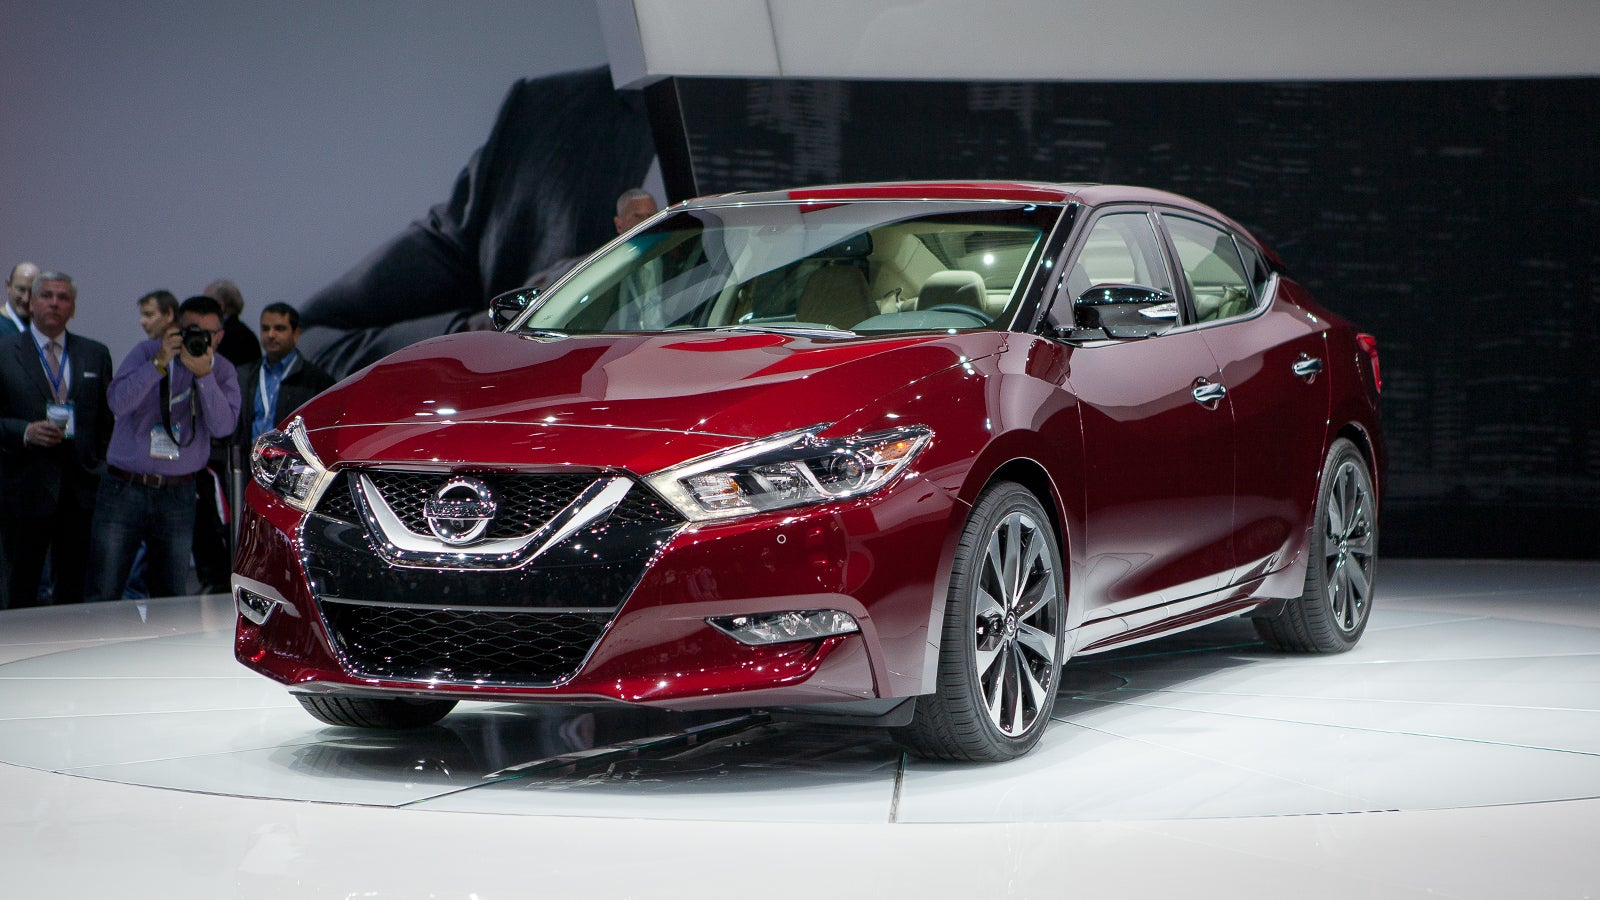 2016 nissan maxima a 4 door sports car if sports cars have fwd and cvts. Black Bedroom Furniture Sets. Home Design Ideas